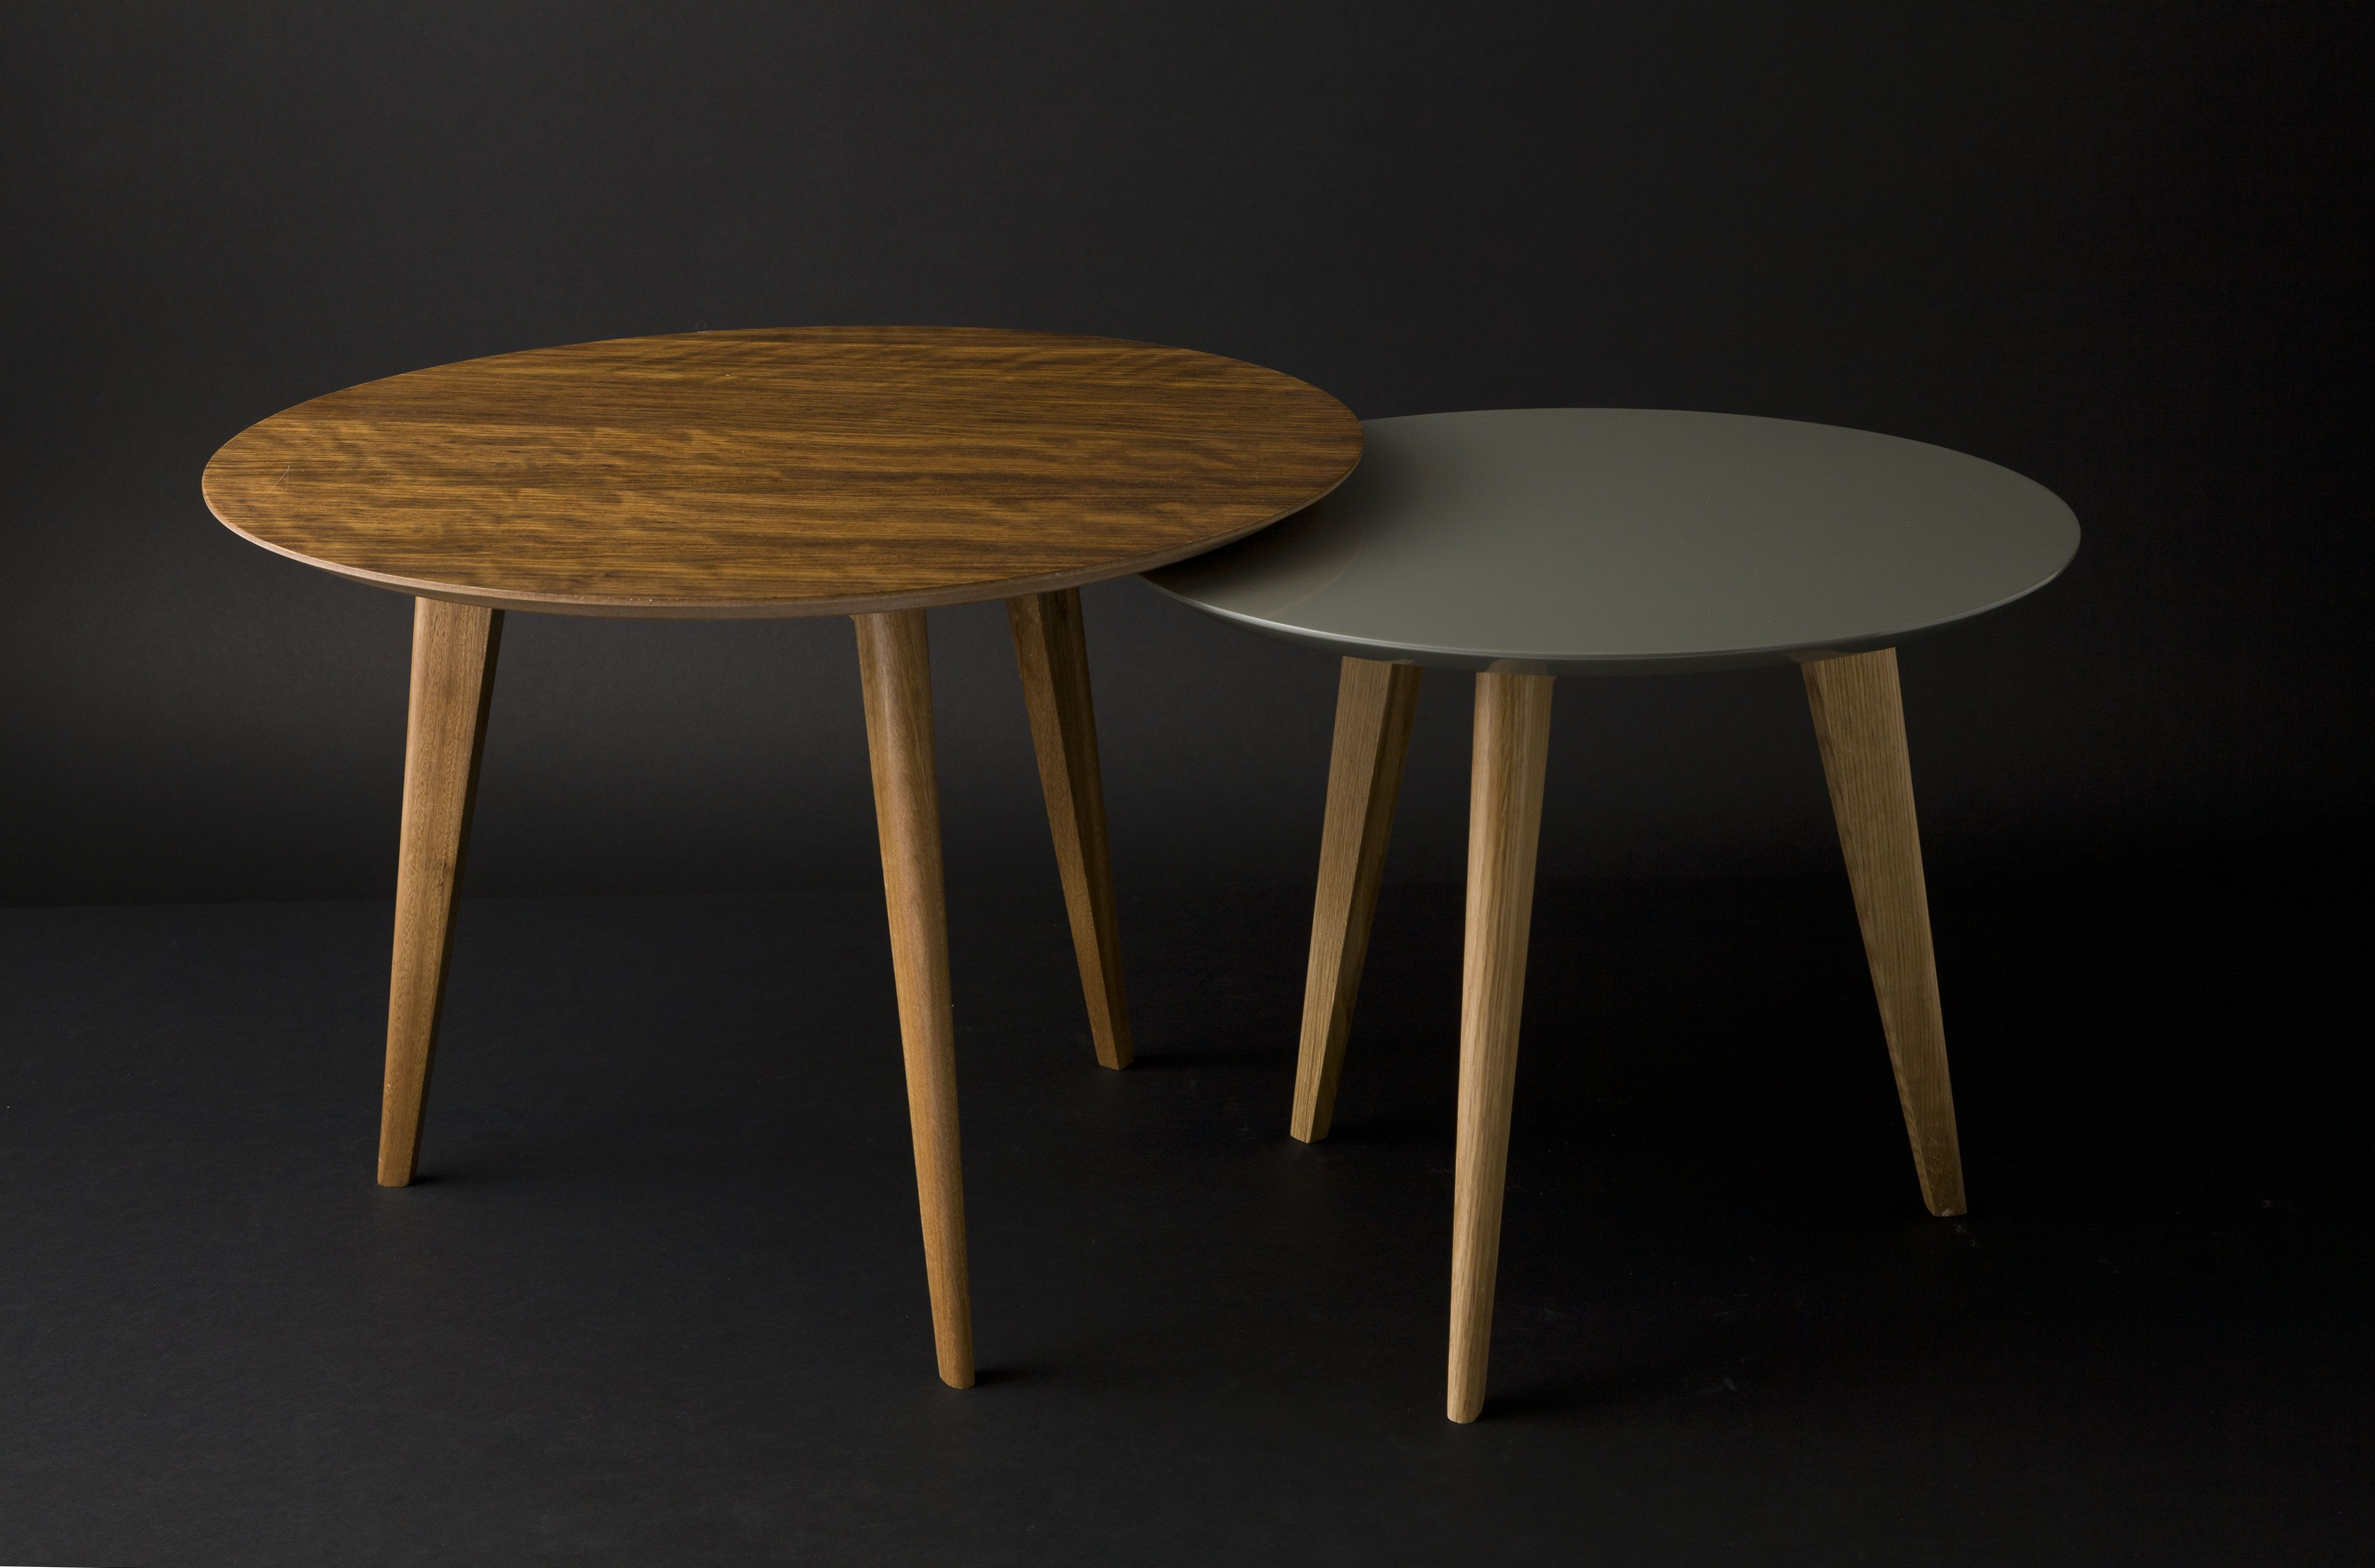 lalinde tables from sentou are cheap and beautiful | déco